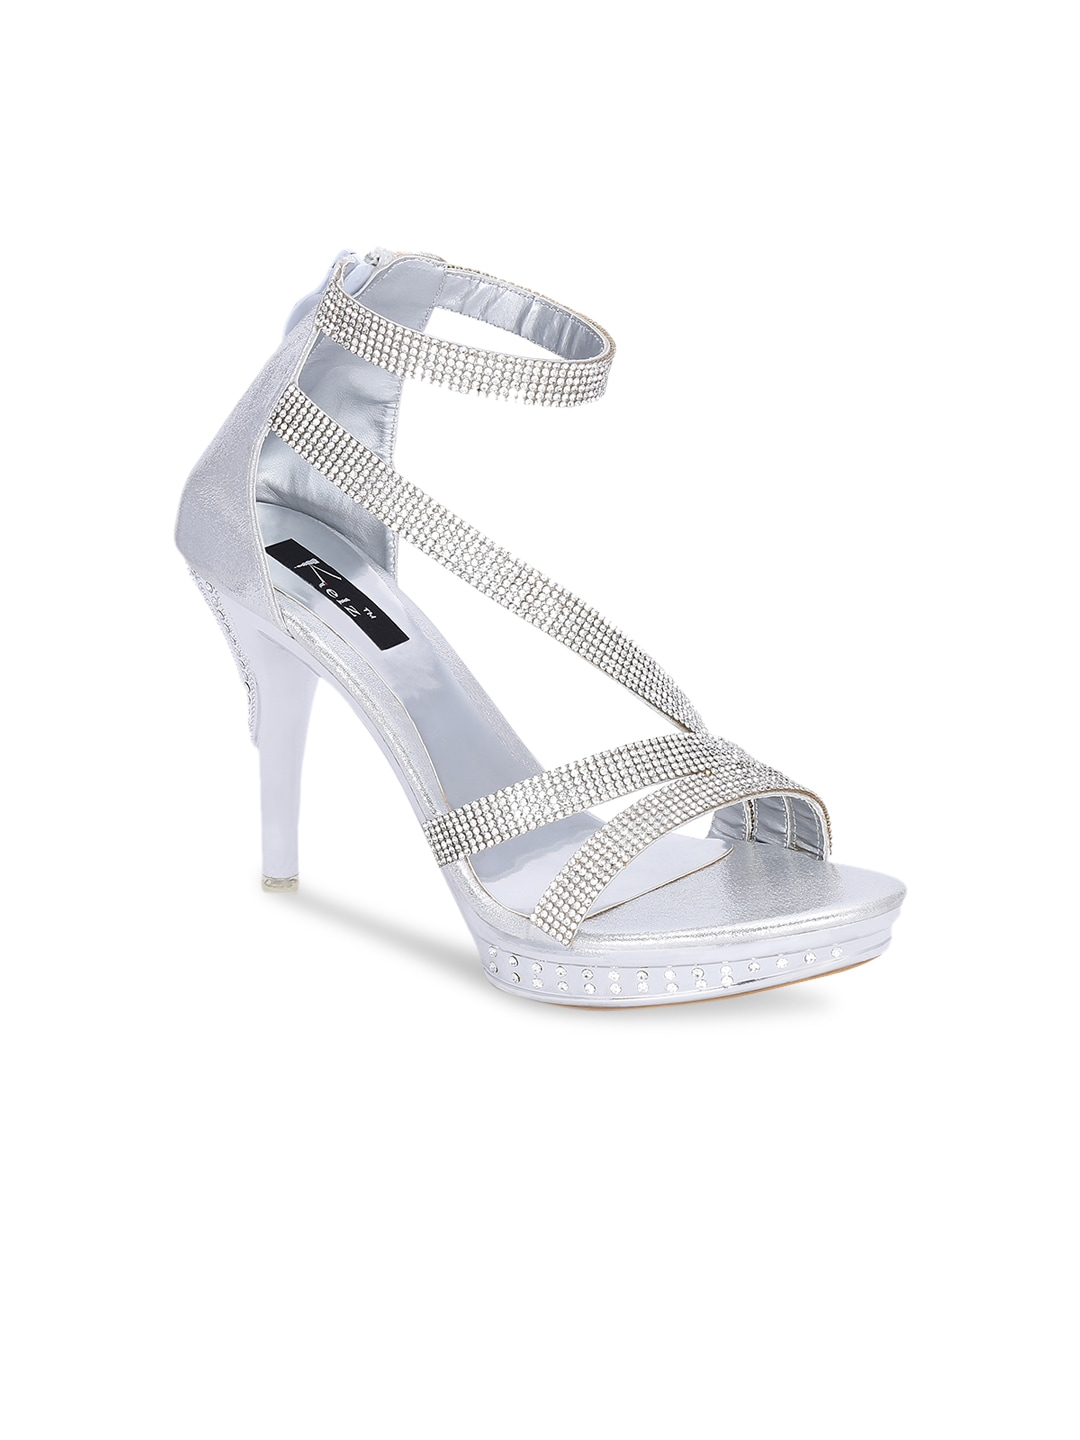 4f042c6f6798 Kielz Stiletto Heels - Buy Kielz Stiletto Heels online in India